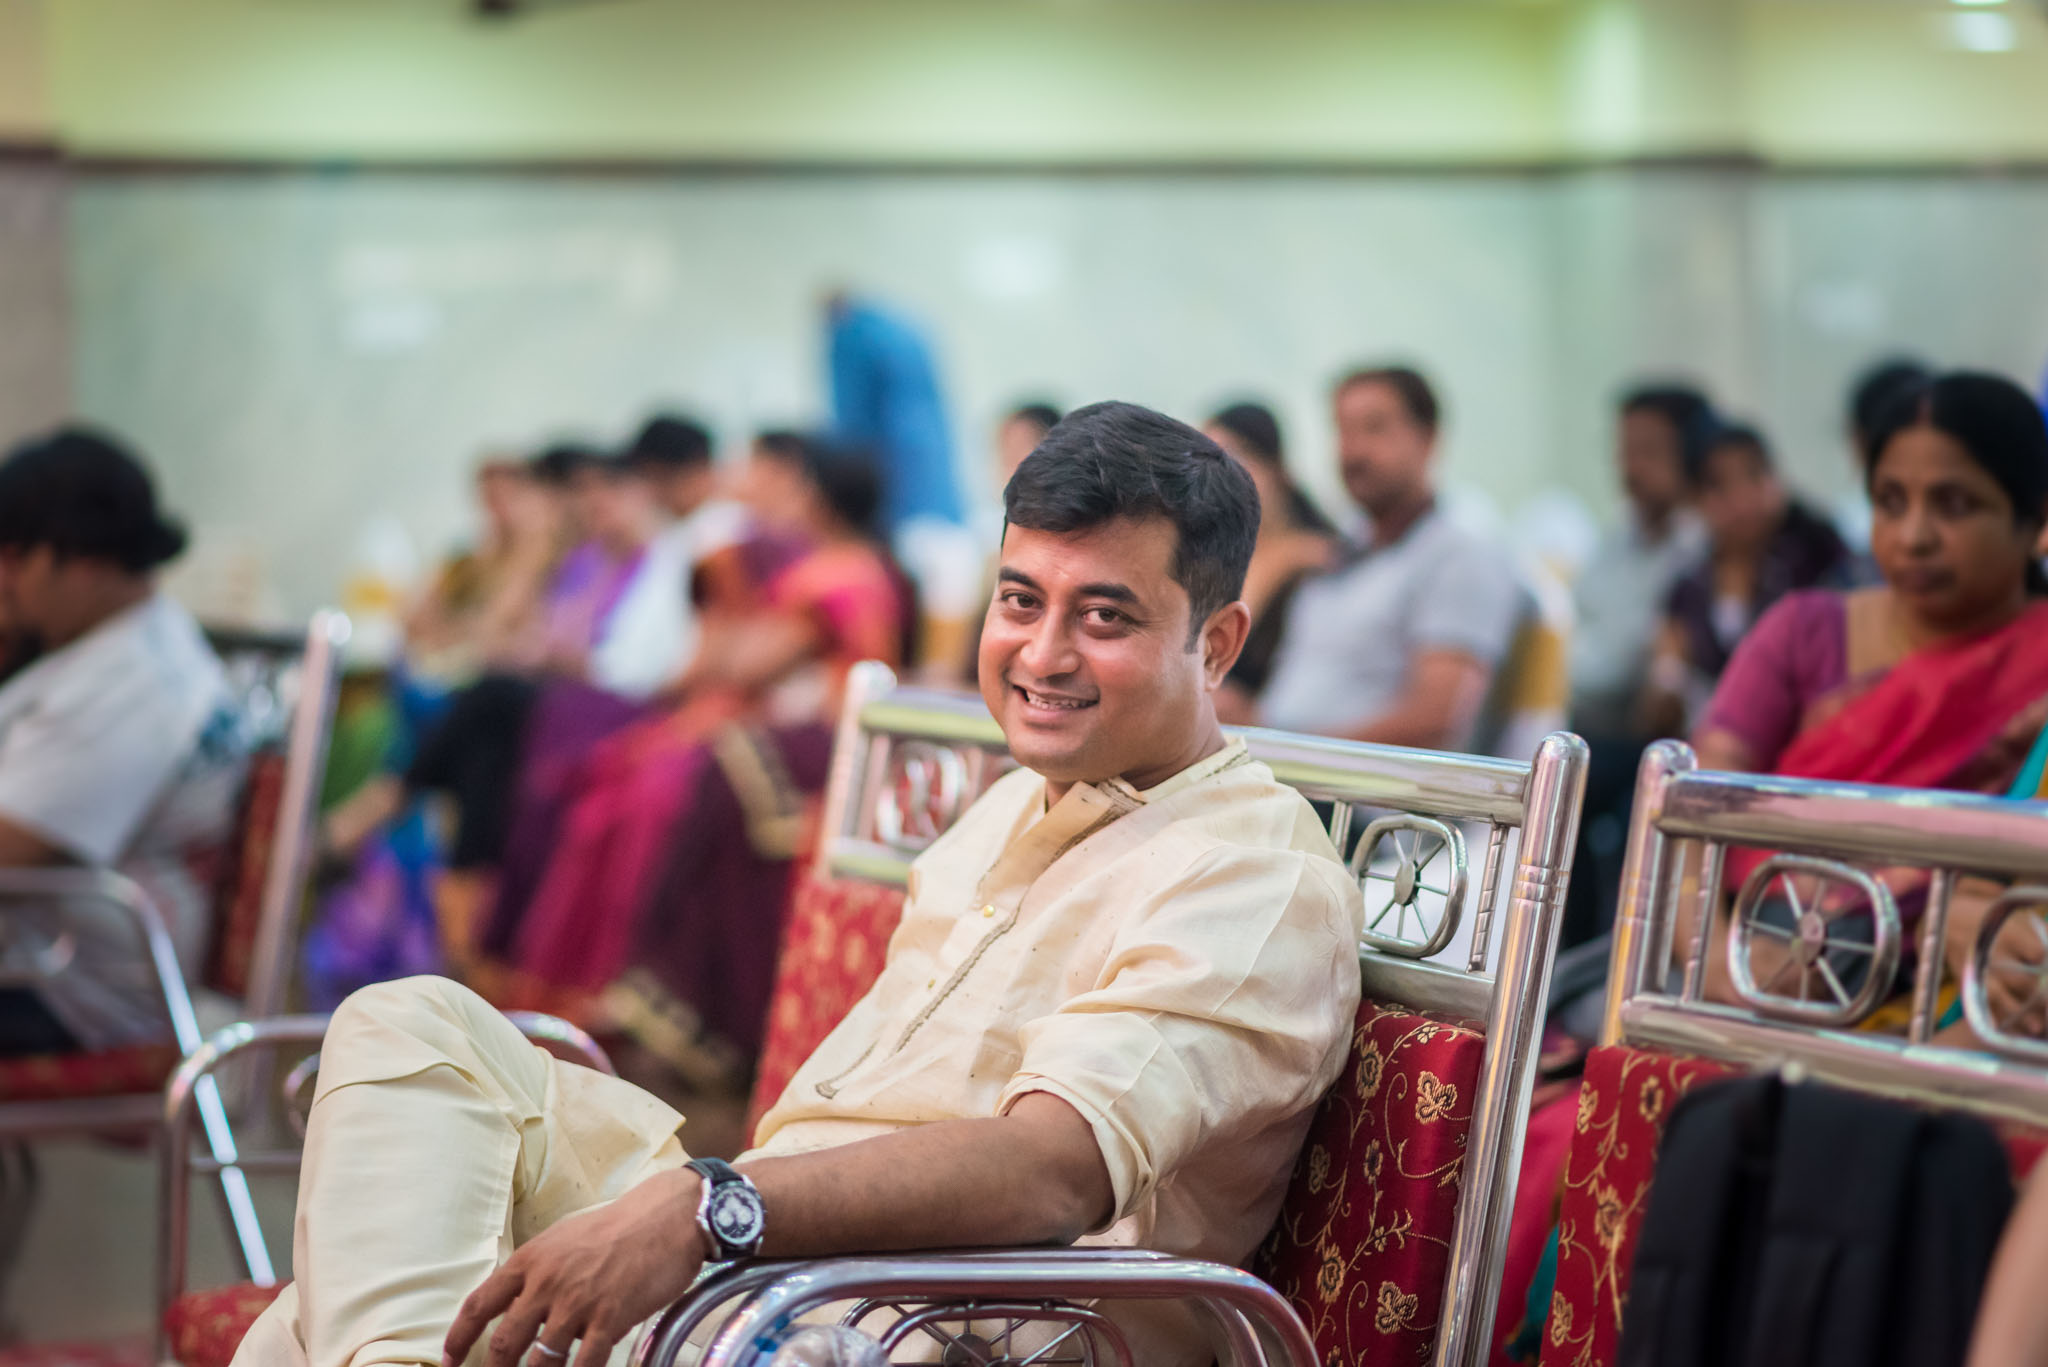 WhatKnot-Candid-Wedding-Photography-Mumbai-Bangalore-59